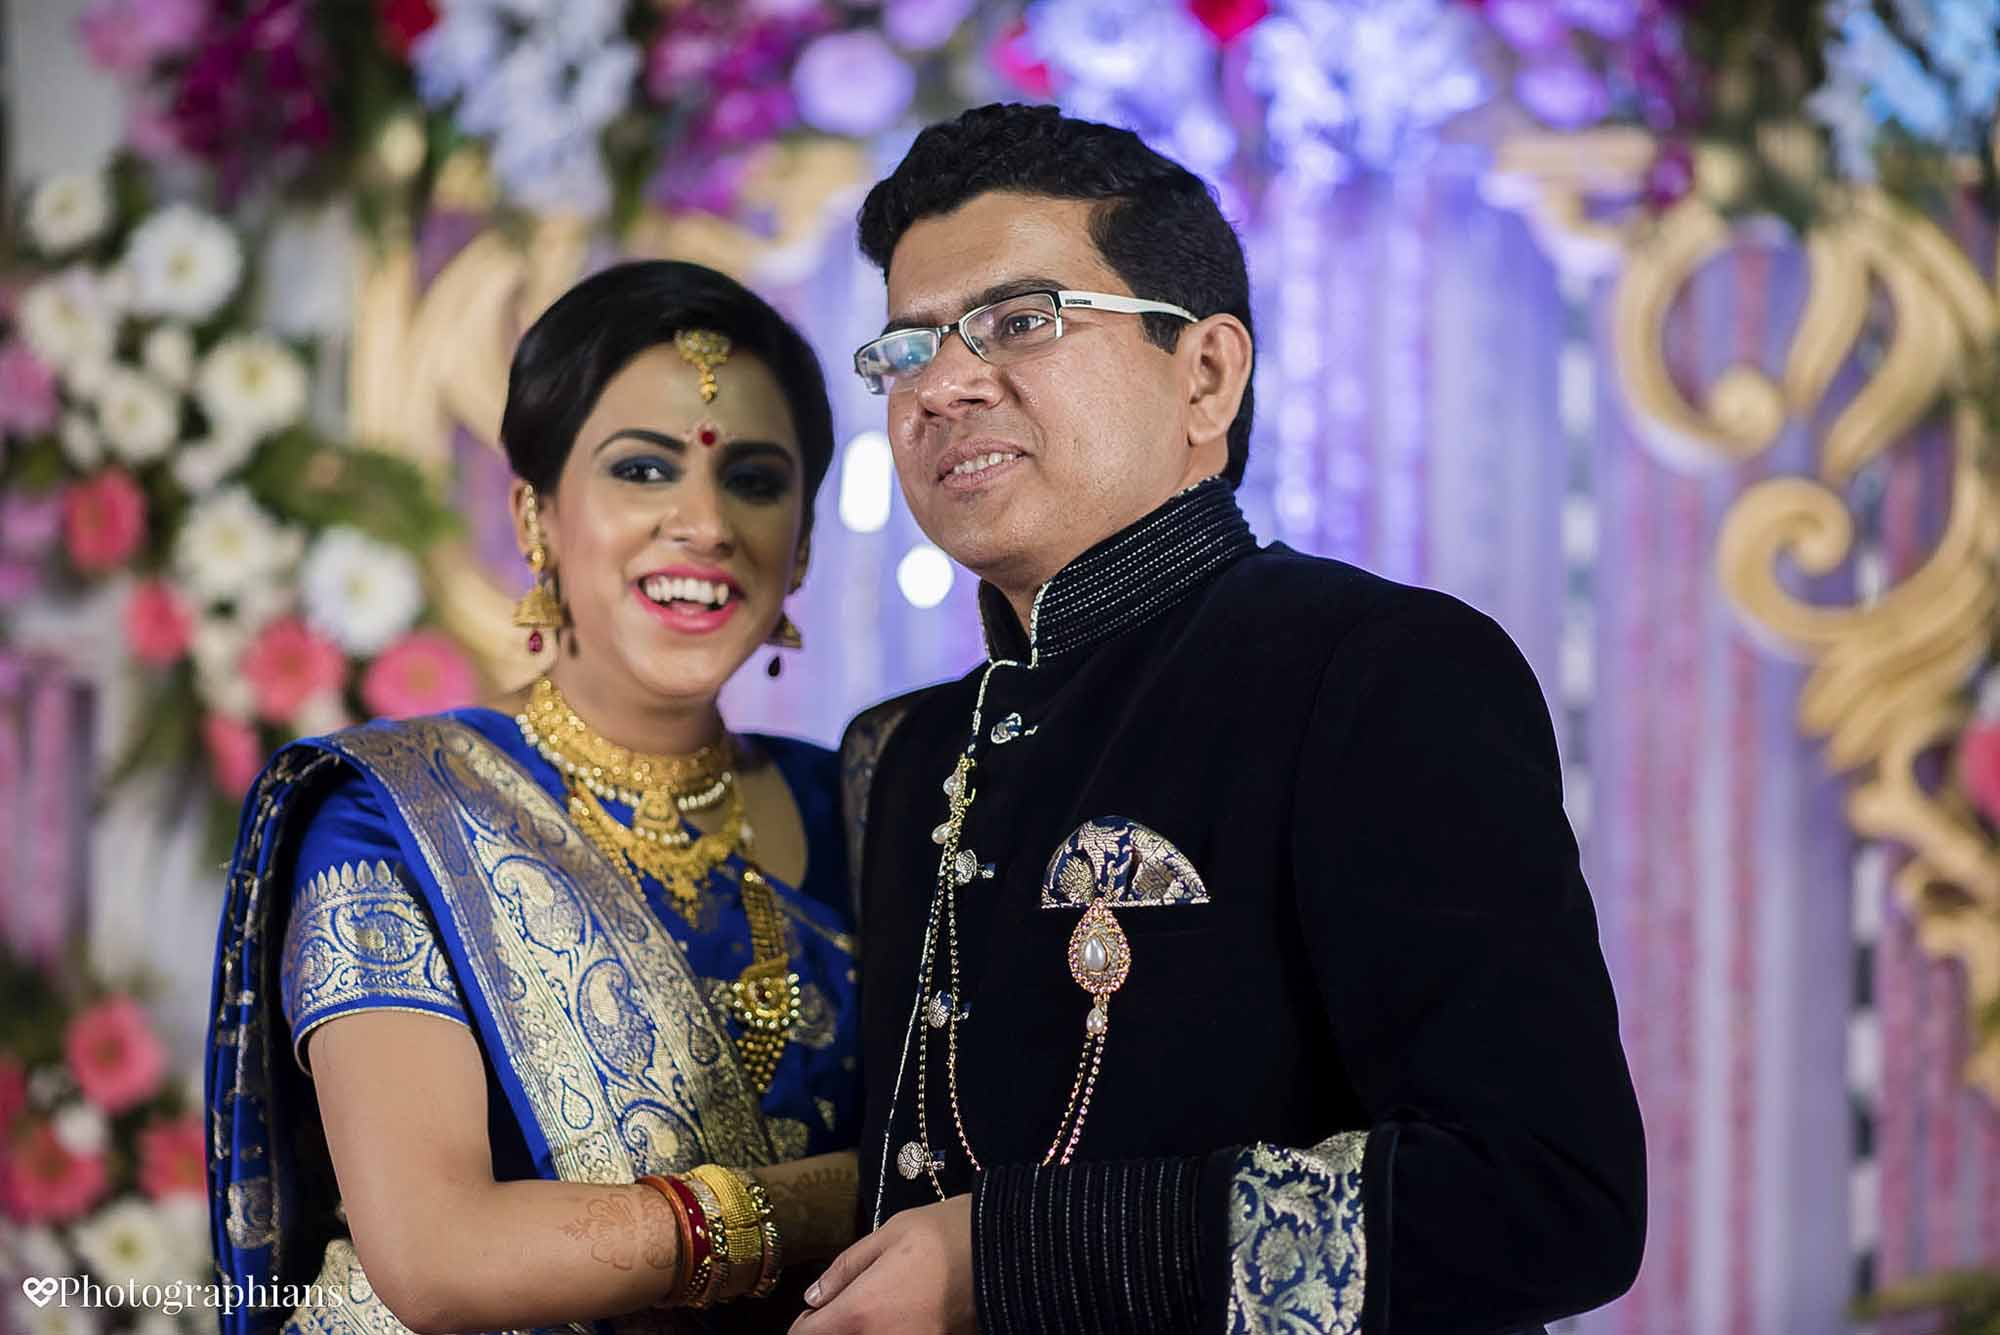 Bengali_Wedding_Photography_Kolkata_Photographians_203